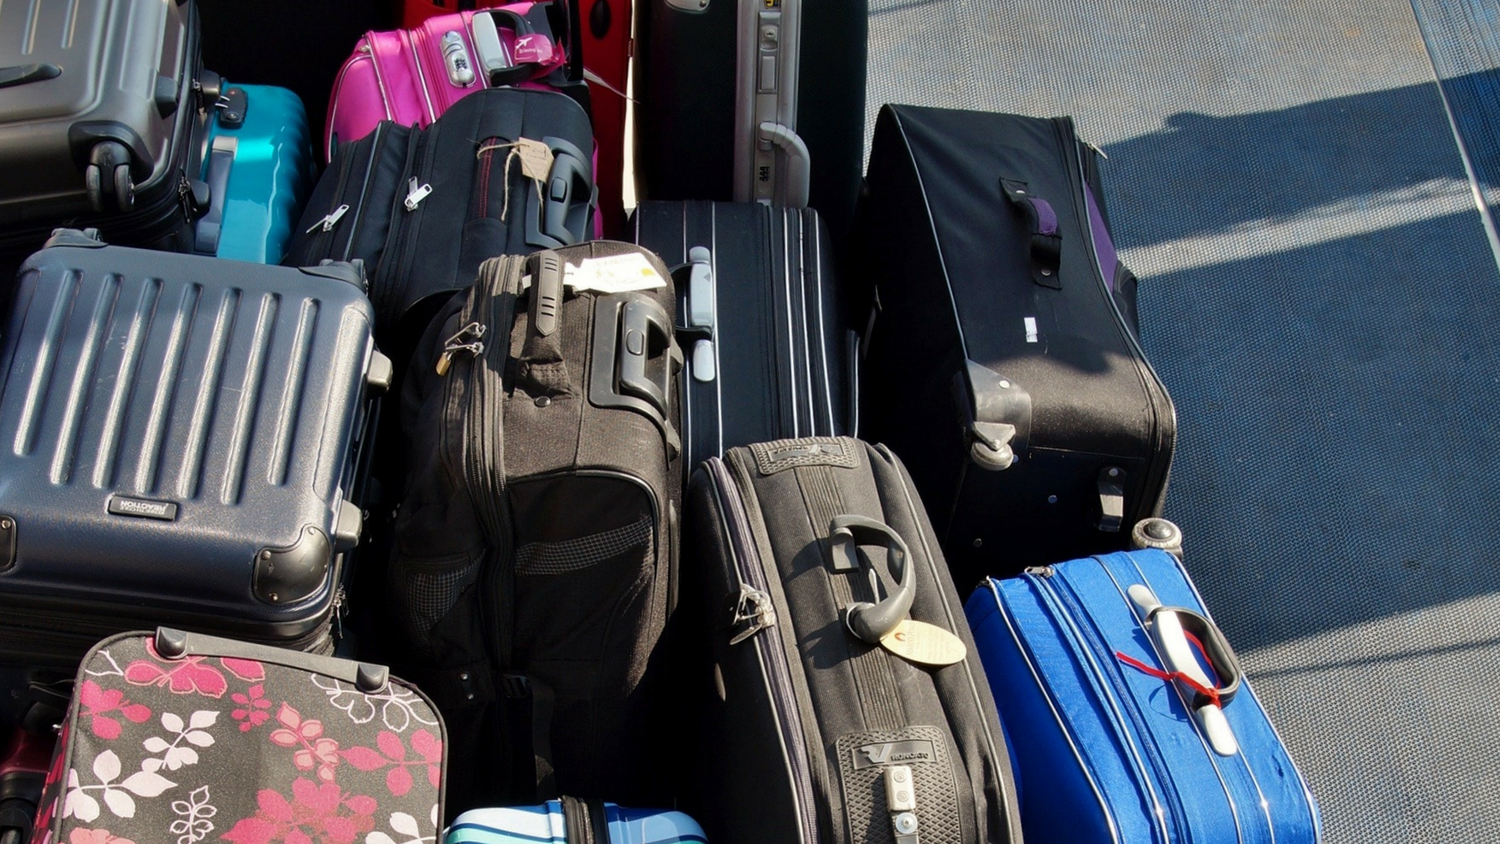 Pile of suitcases on ground